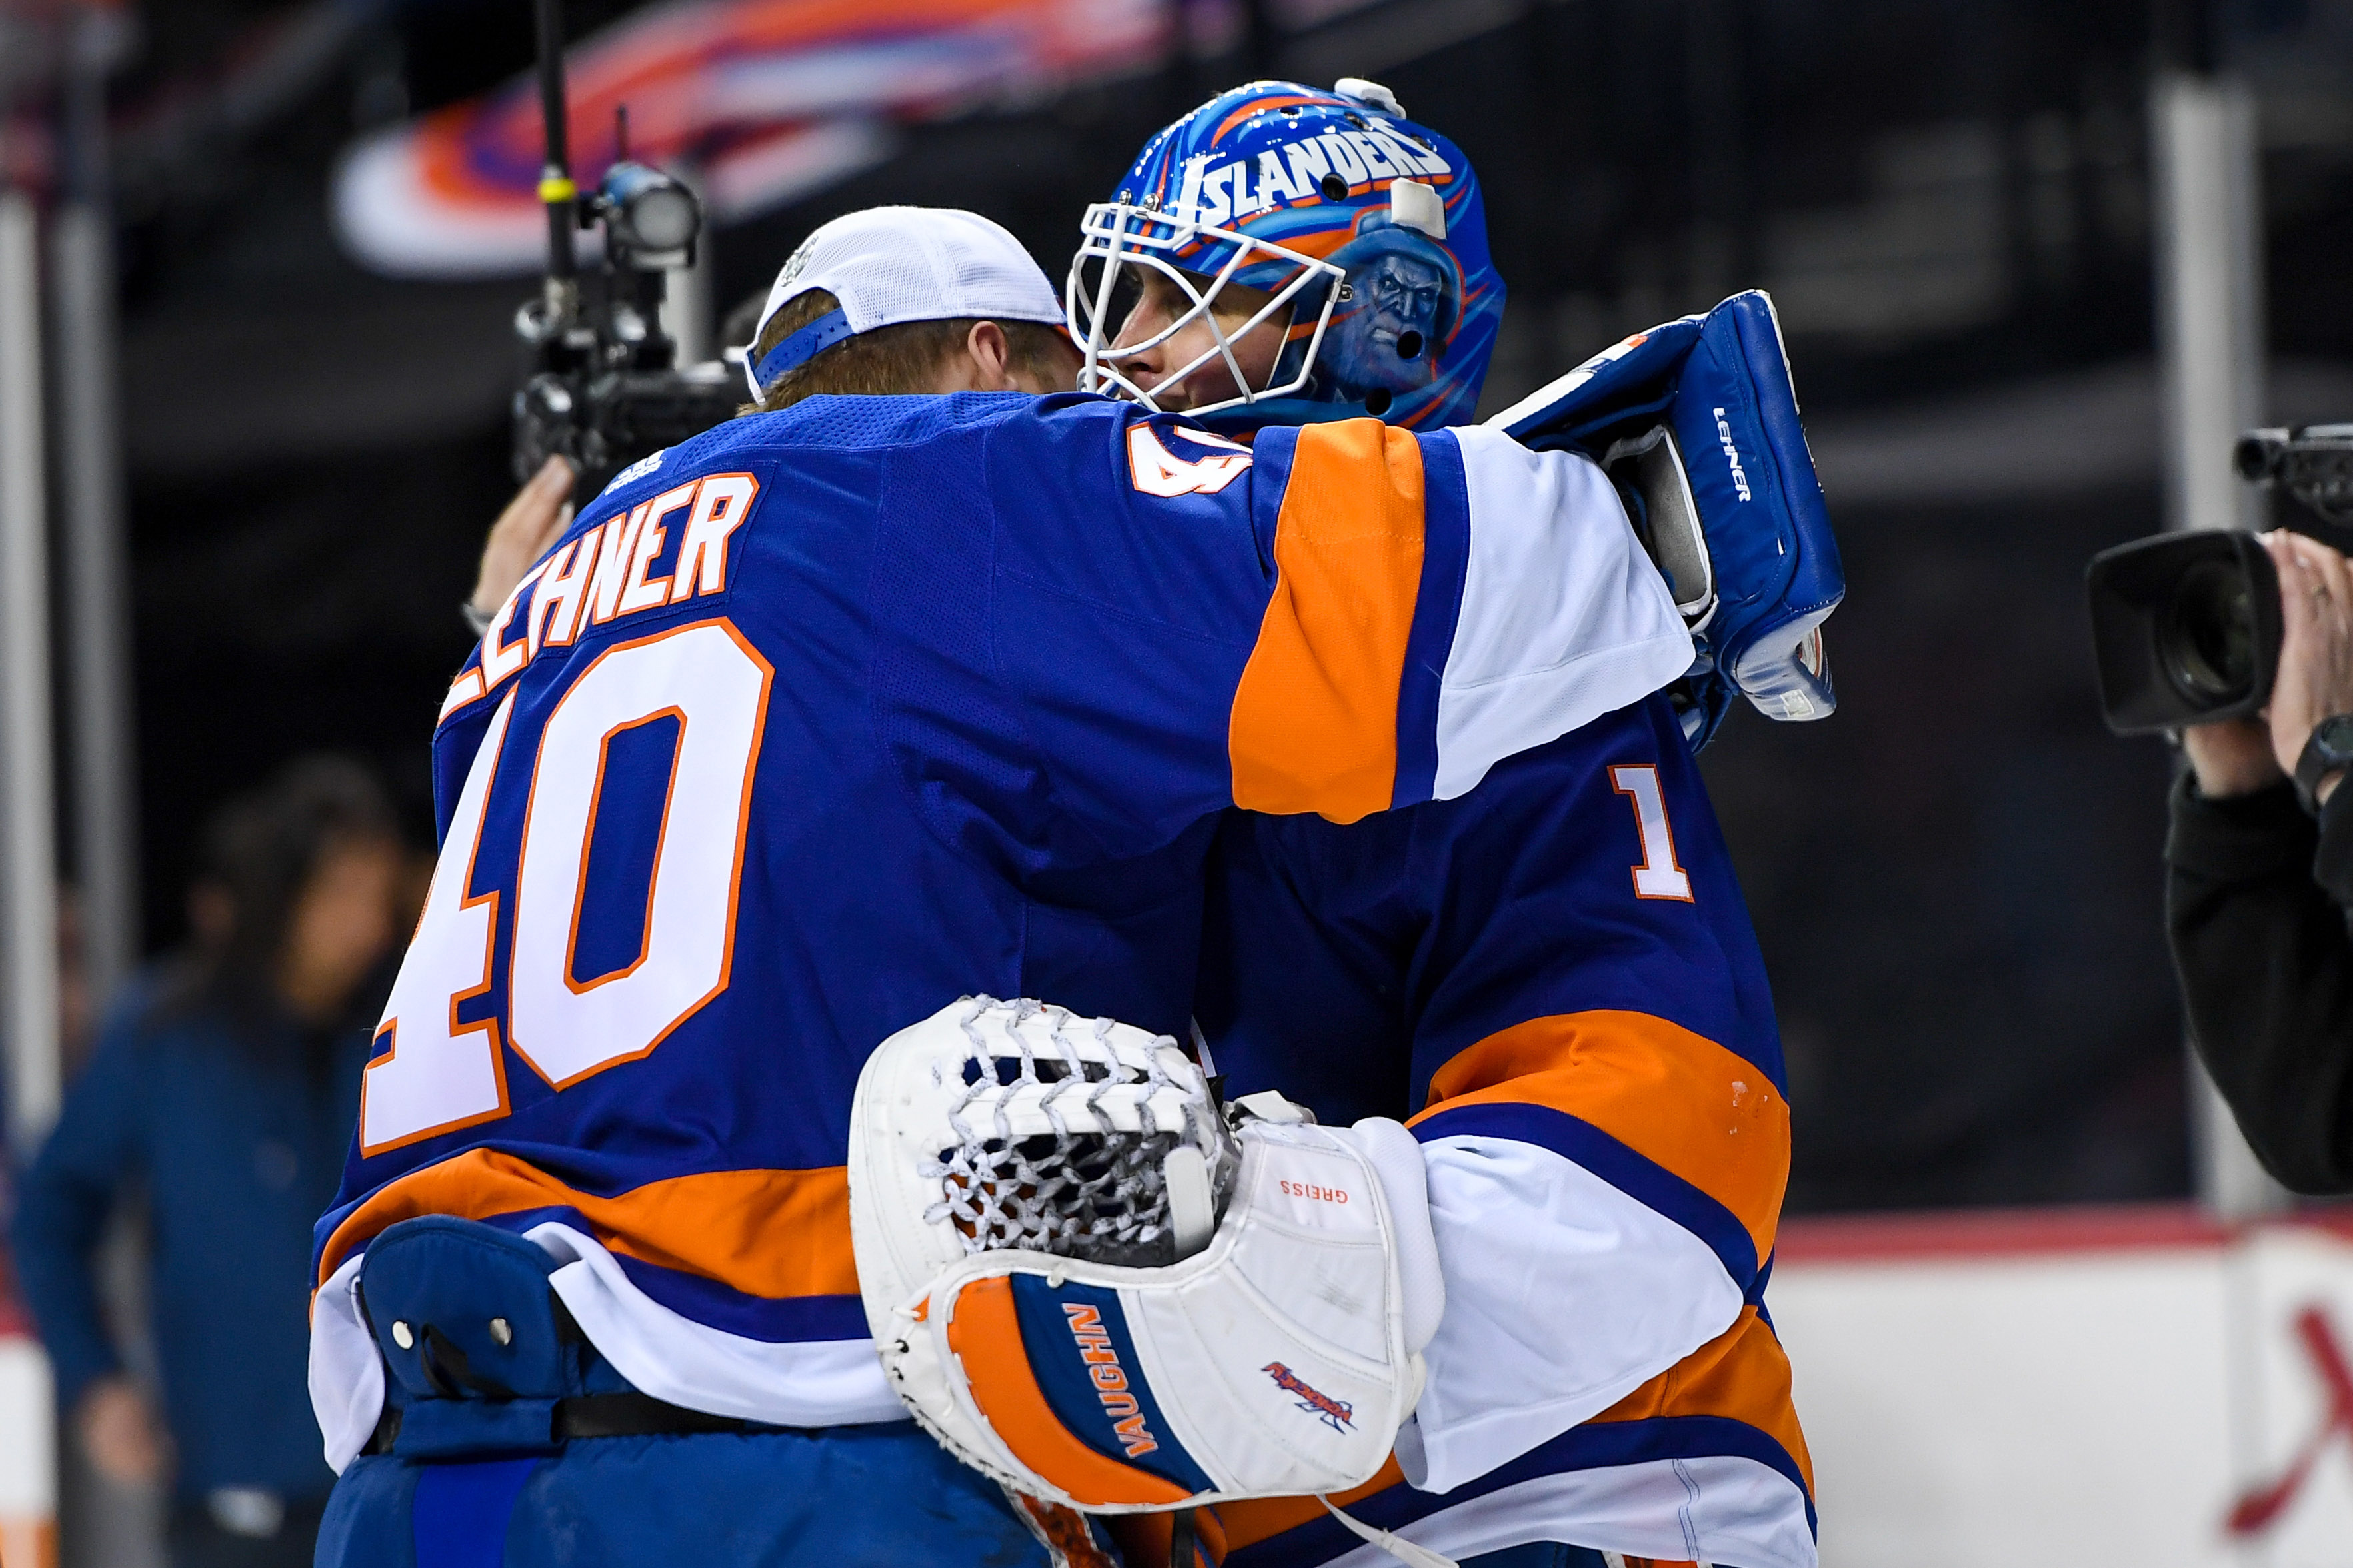 Feb 10, 2019; Brooklyn, NY, USA; New York Islanders goaltender Robin Lehner (40) celebrates with Islanders goaltender Thomas Greiss (1) after defeating the against the Minnesota Wild at Barclays Center. Mandatory Credit: Dennis Schneidler-USA TODAY Sports